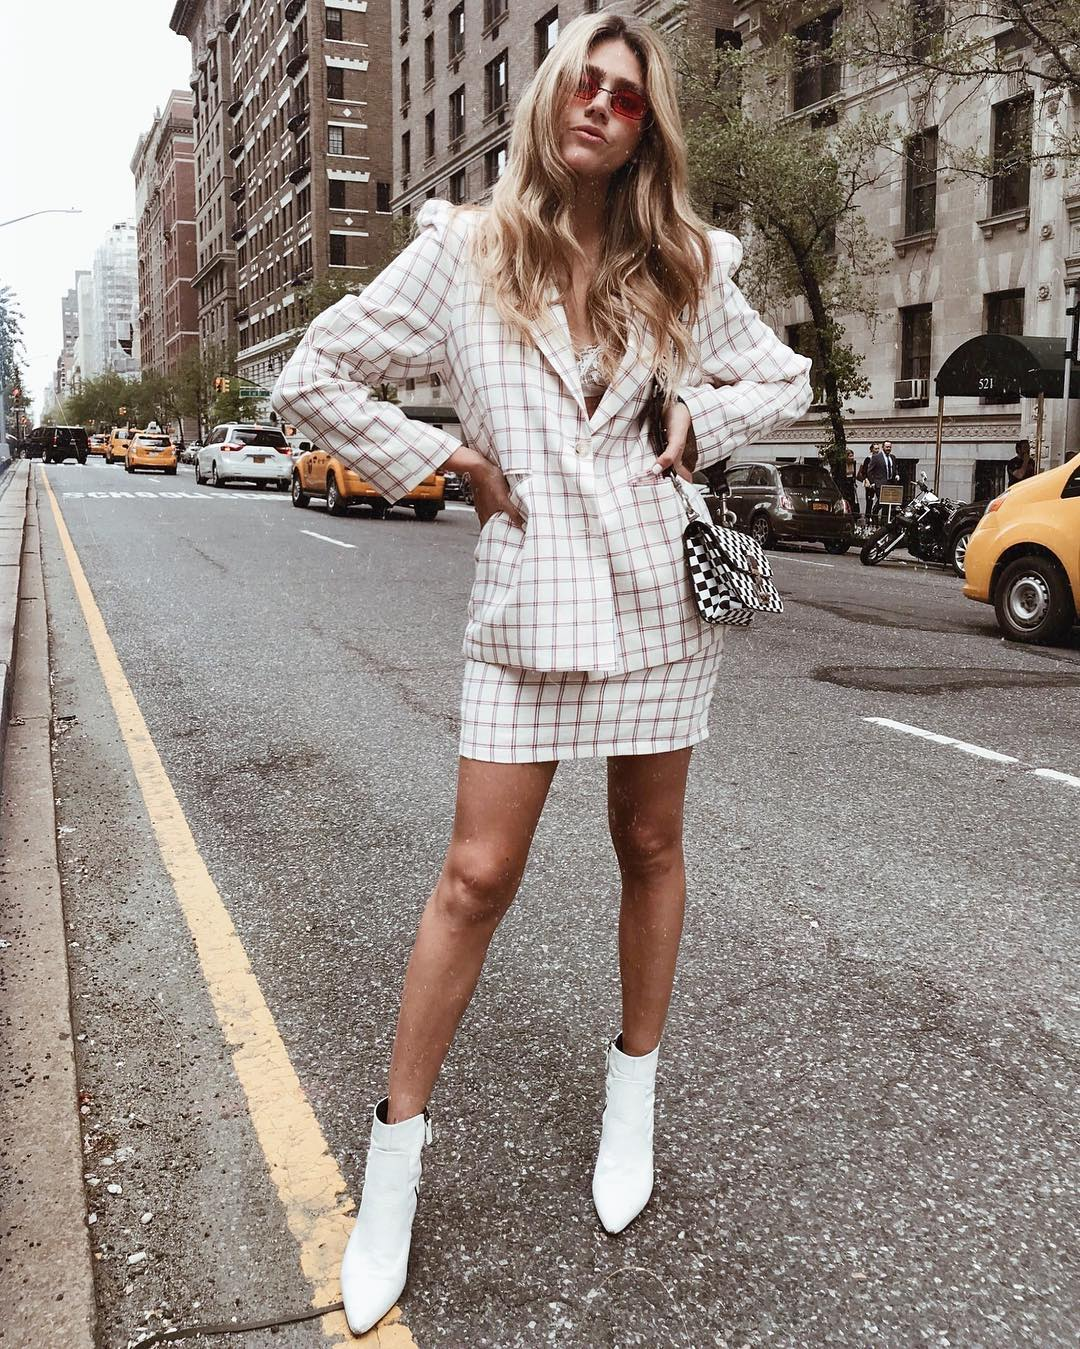 WHITE BOOTIES: A MUST HAVE BASIC